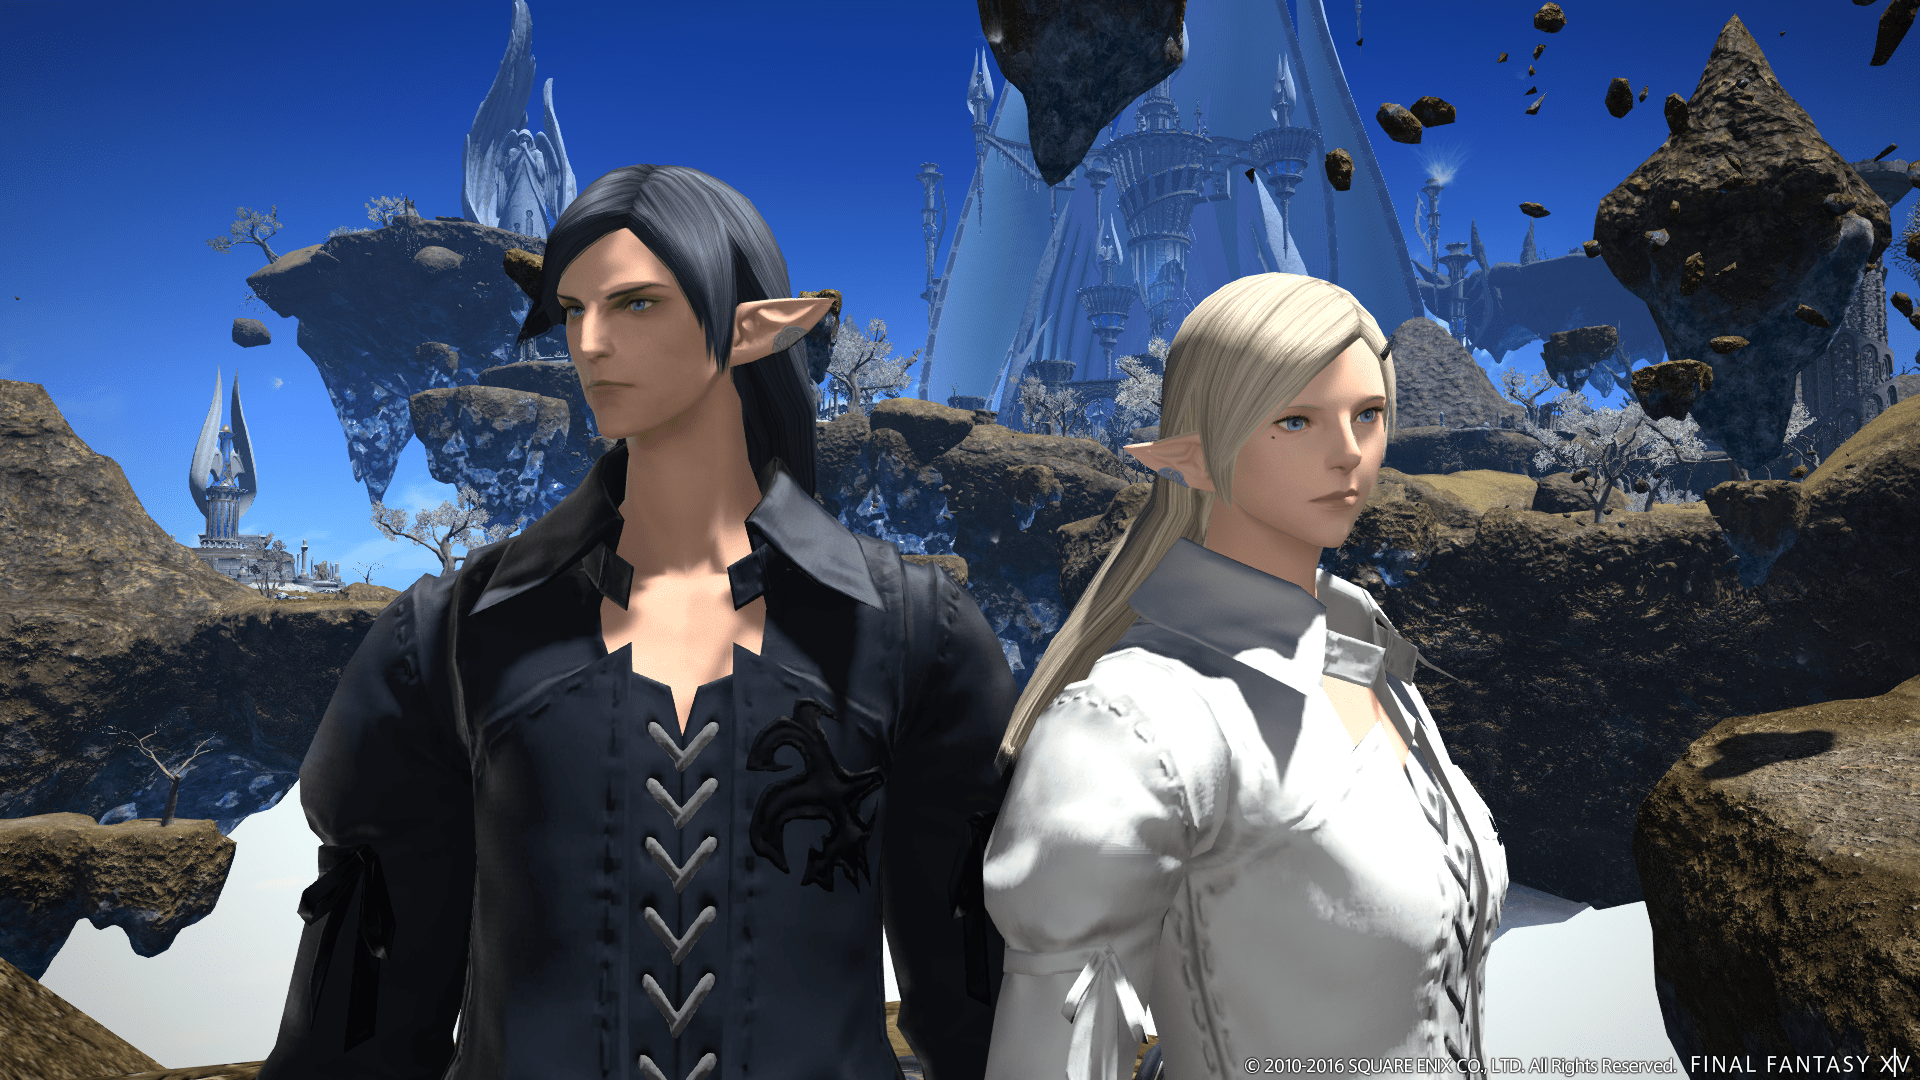 Alexander Mullets And More Previewed For FFXIV Patch 34